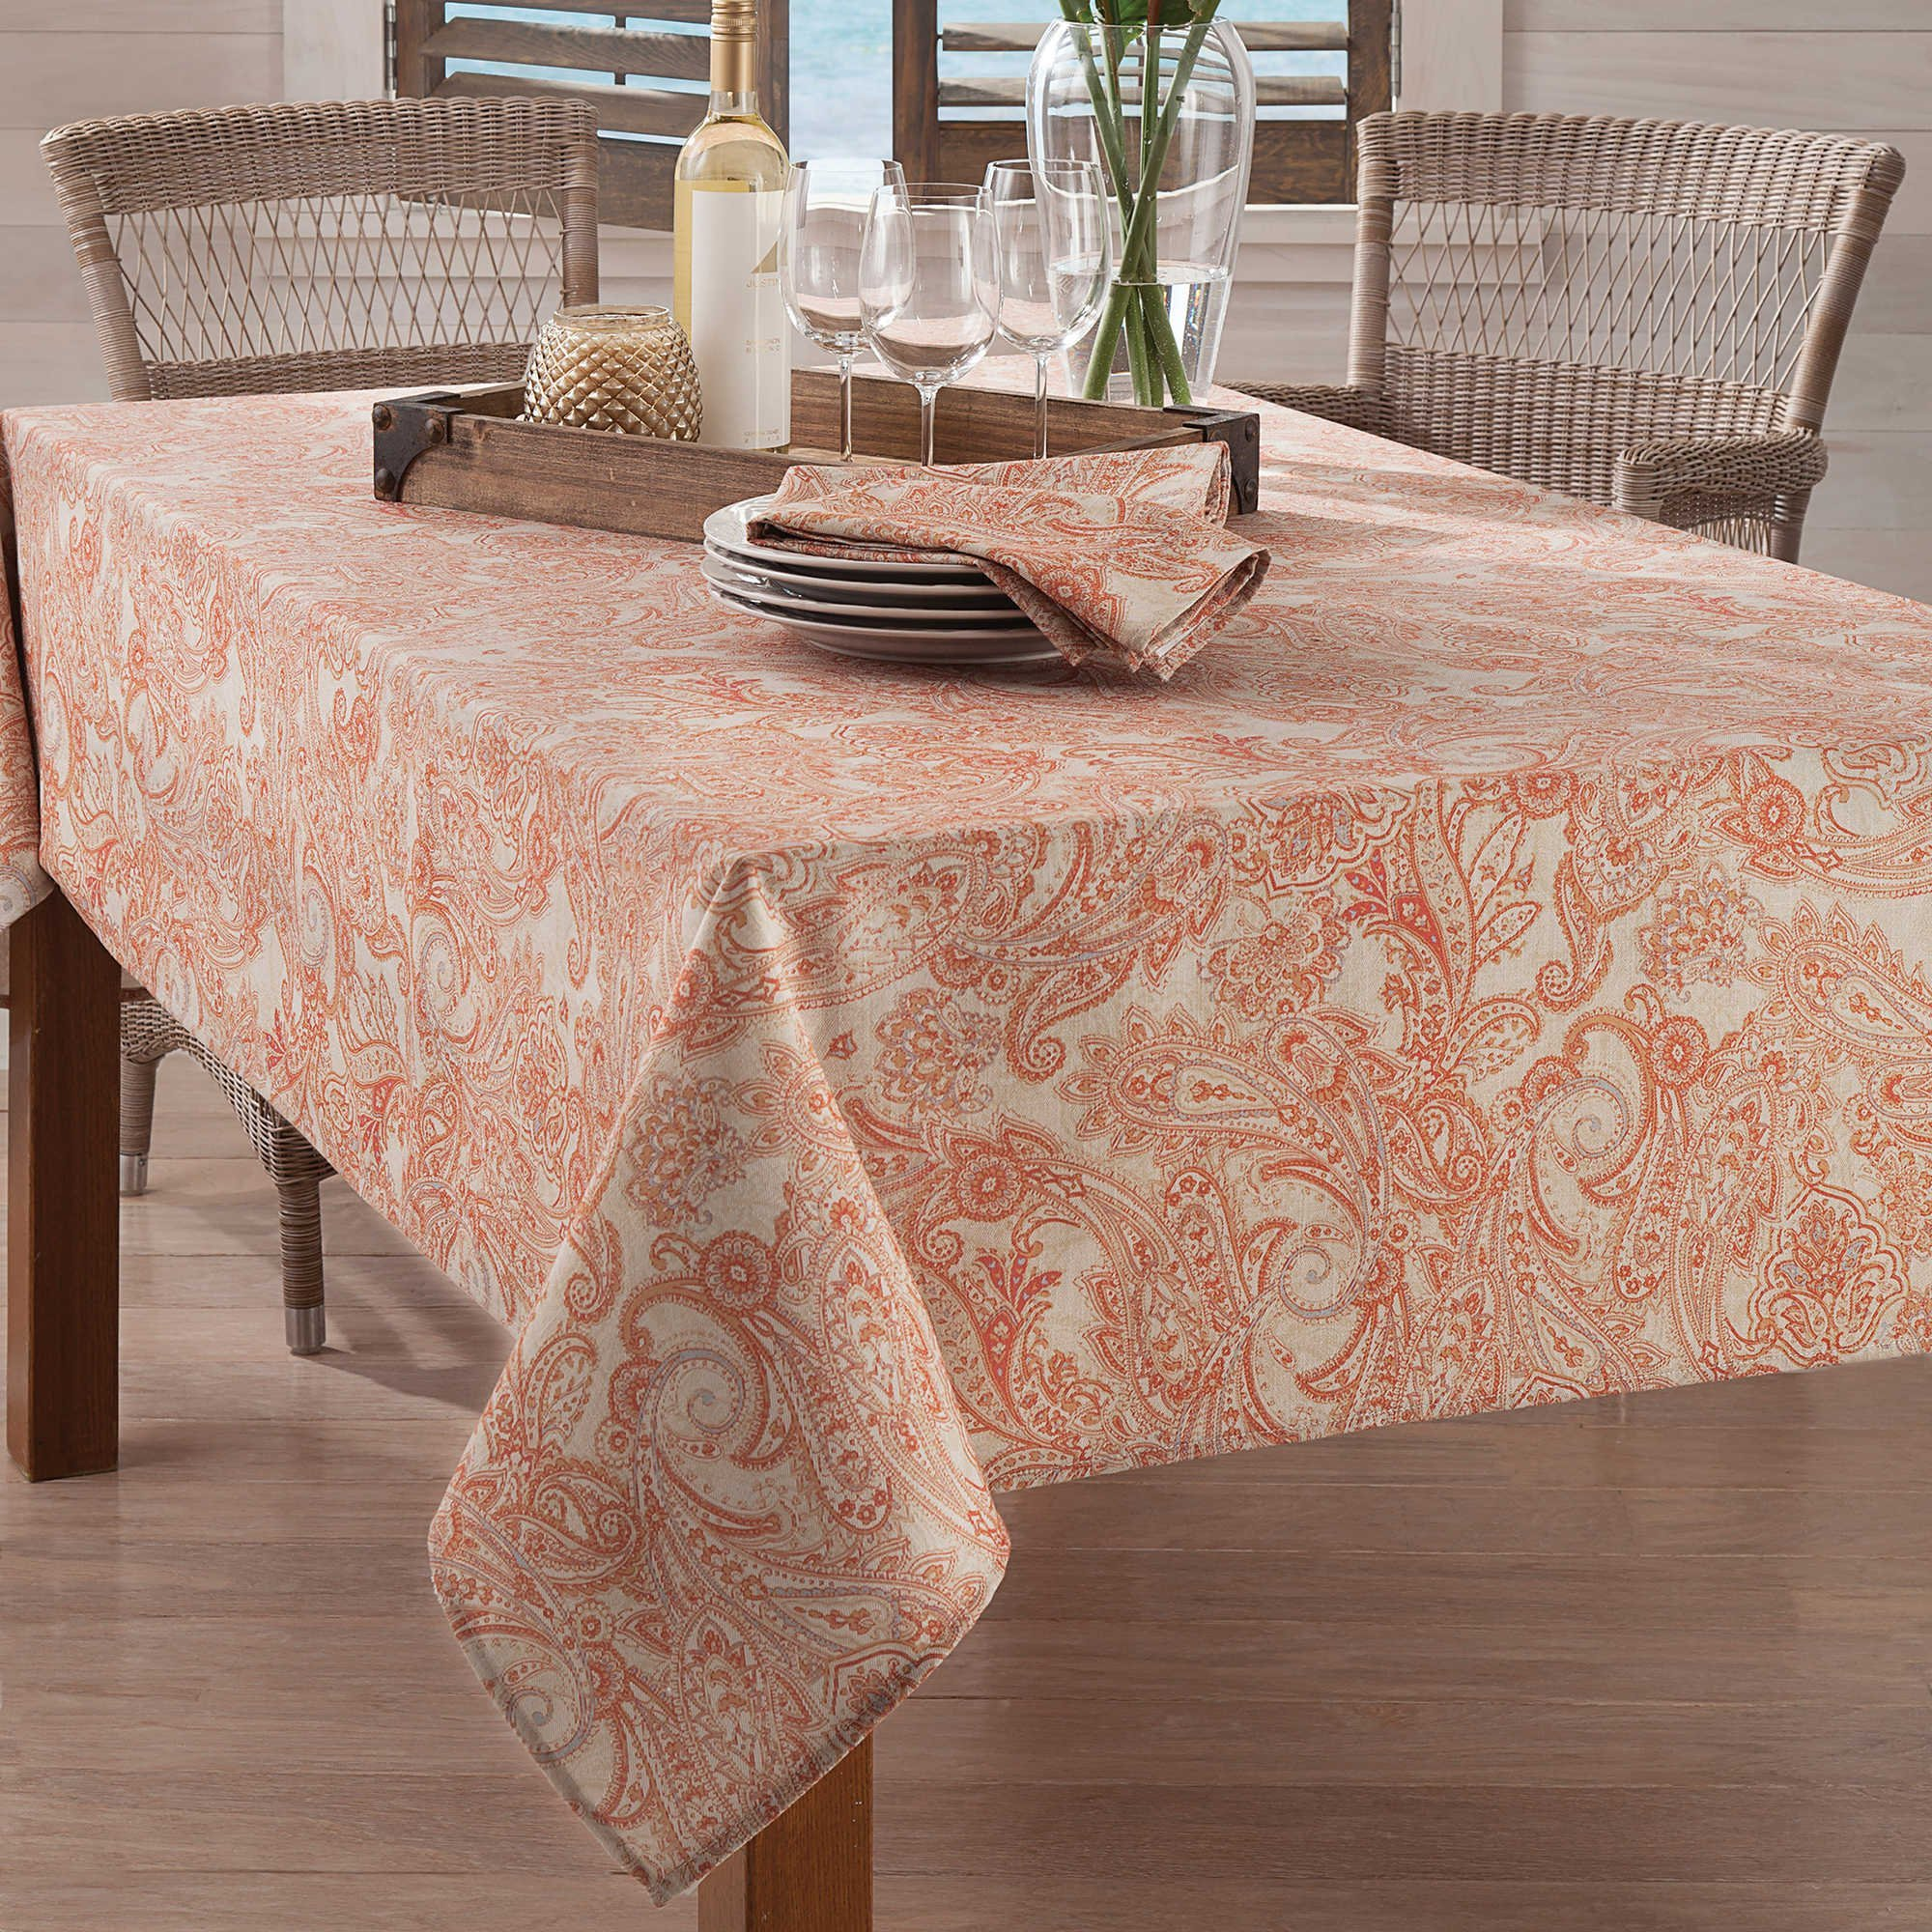 Tommy Bahama East India Paisley Tablecloth - 52'' x 70''